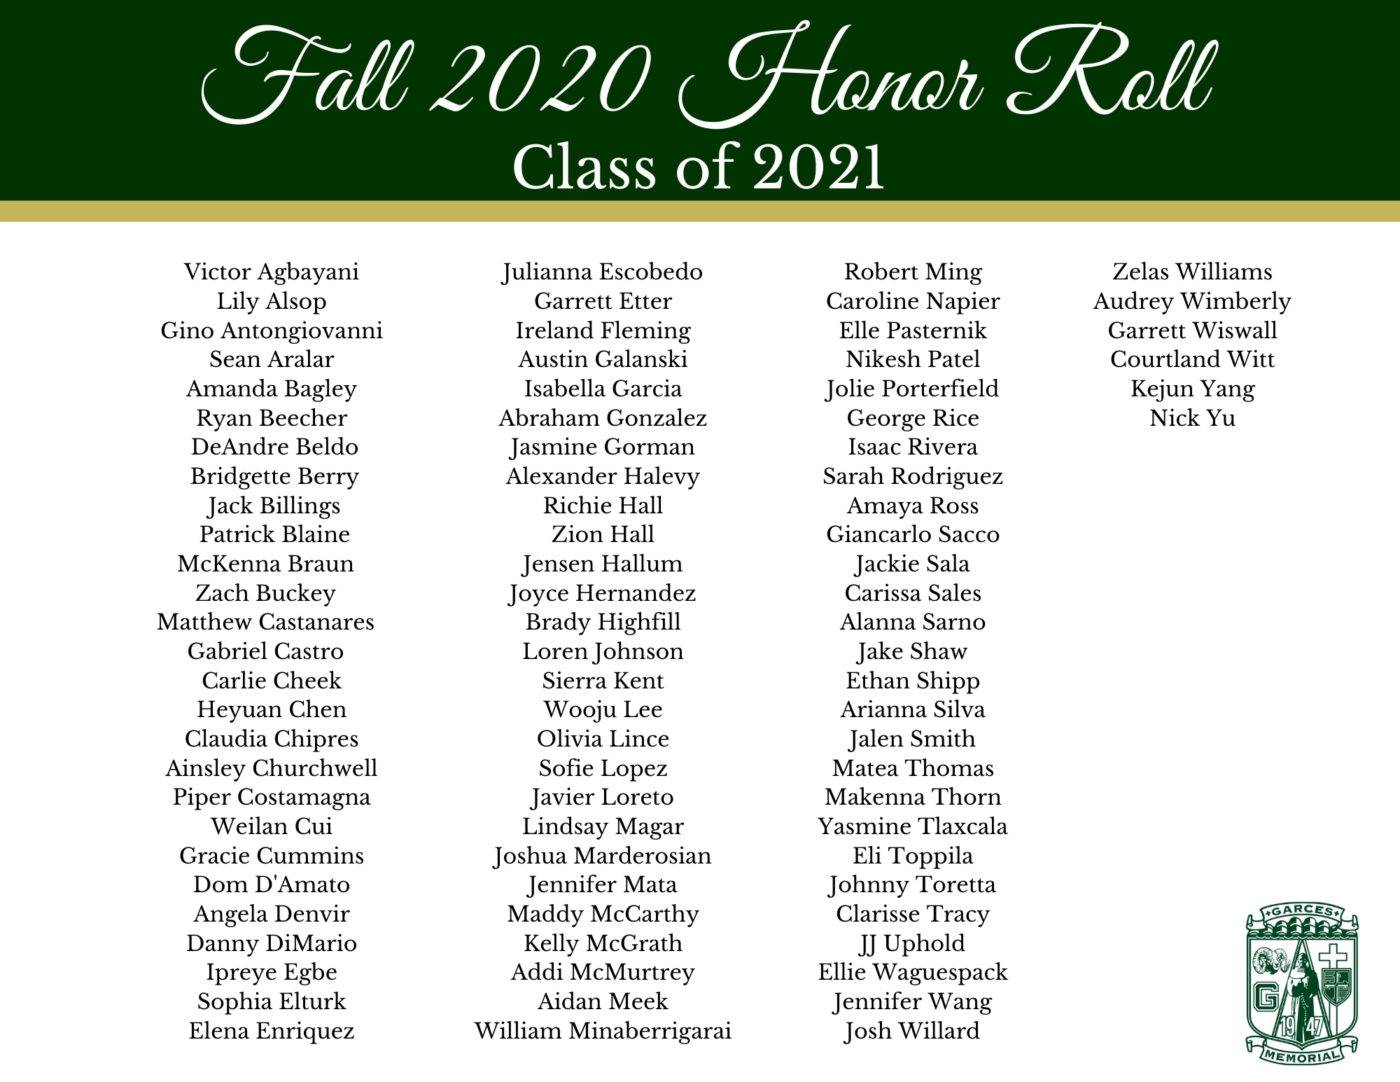 Honor Roll Class of 2021